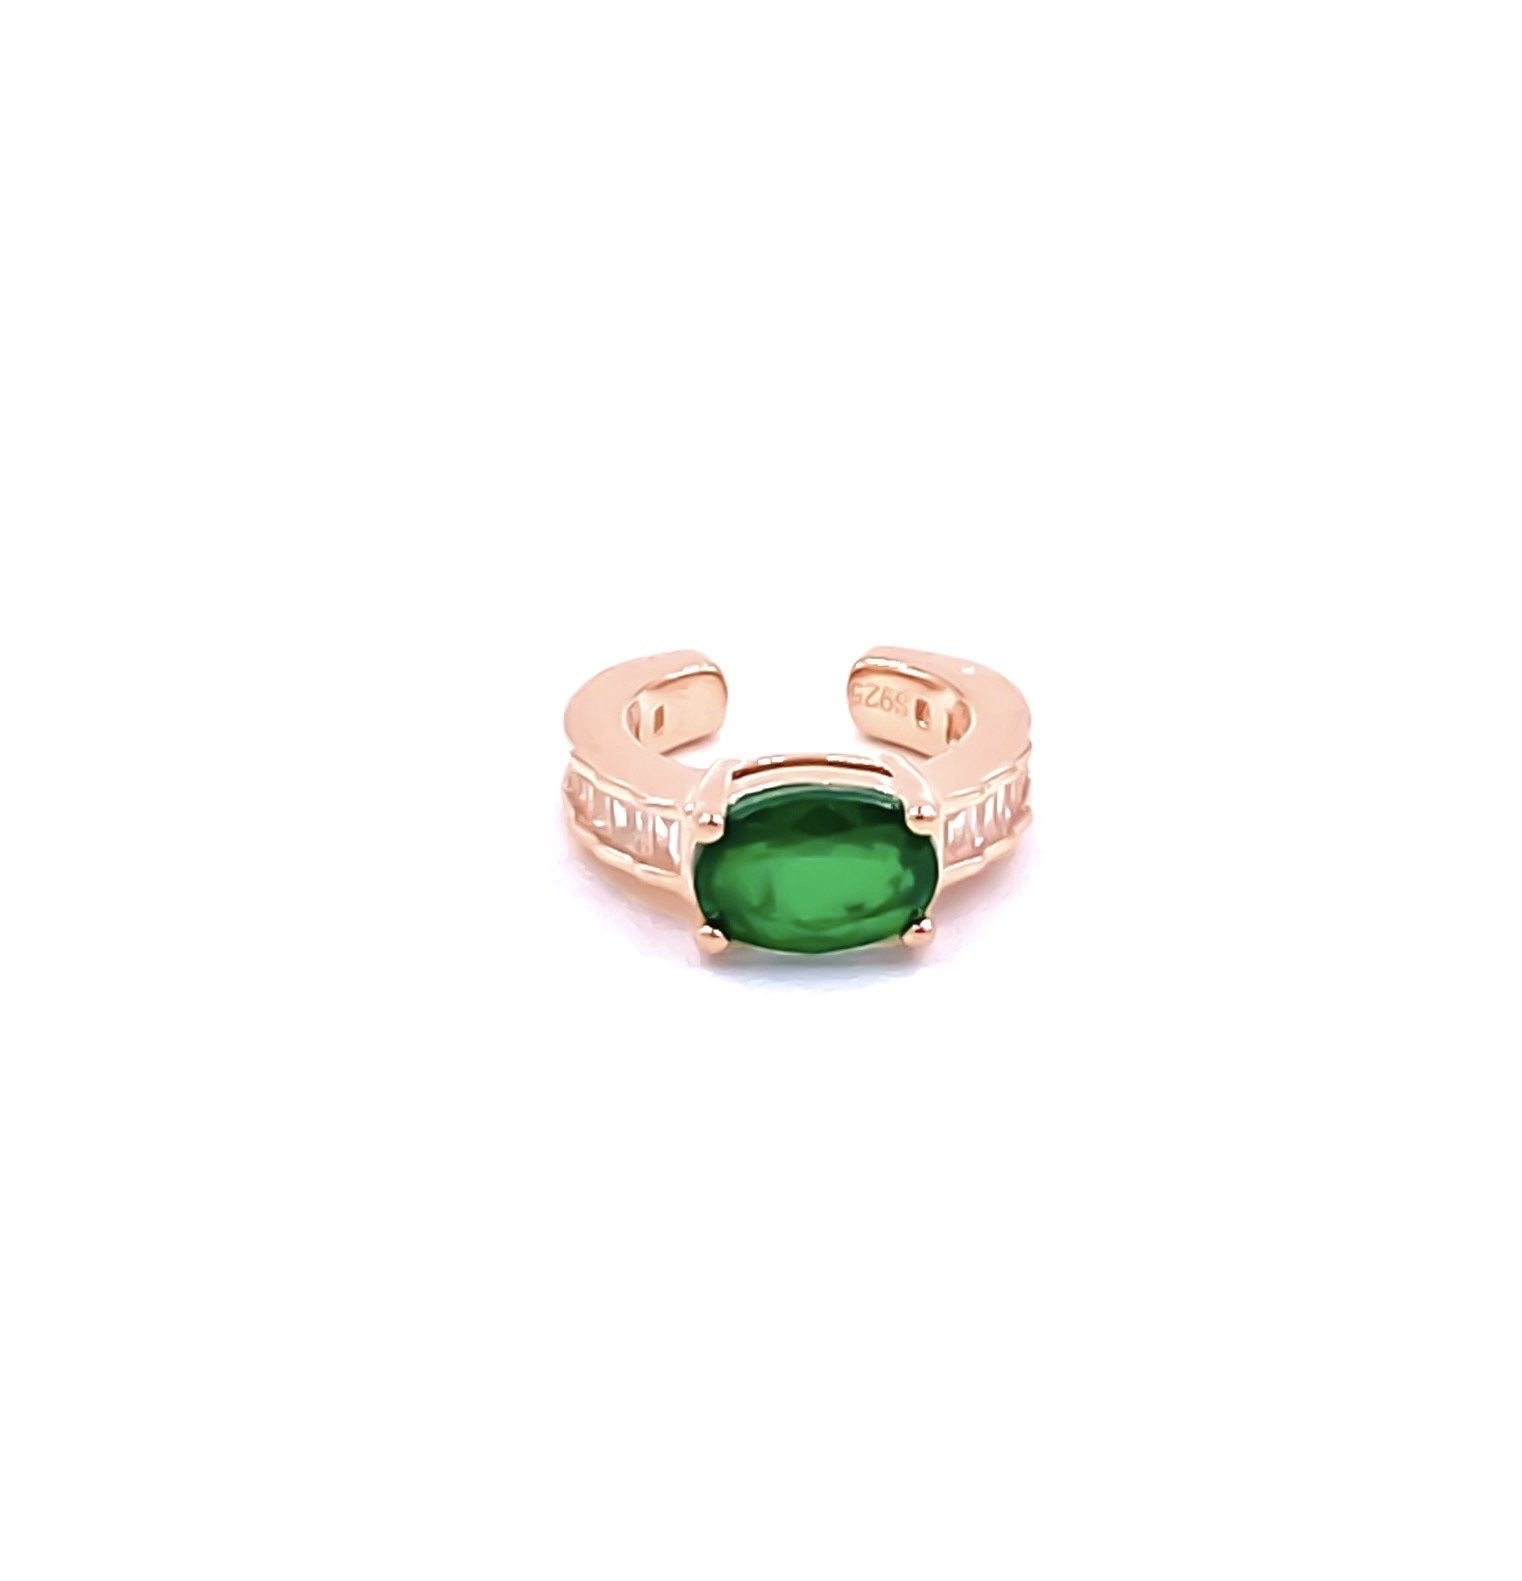 Oval Emerald Gemstone Ear Cuff